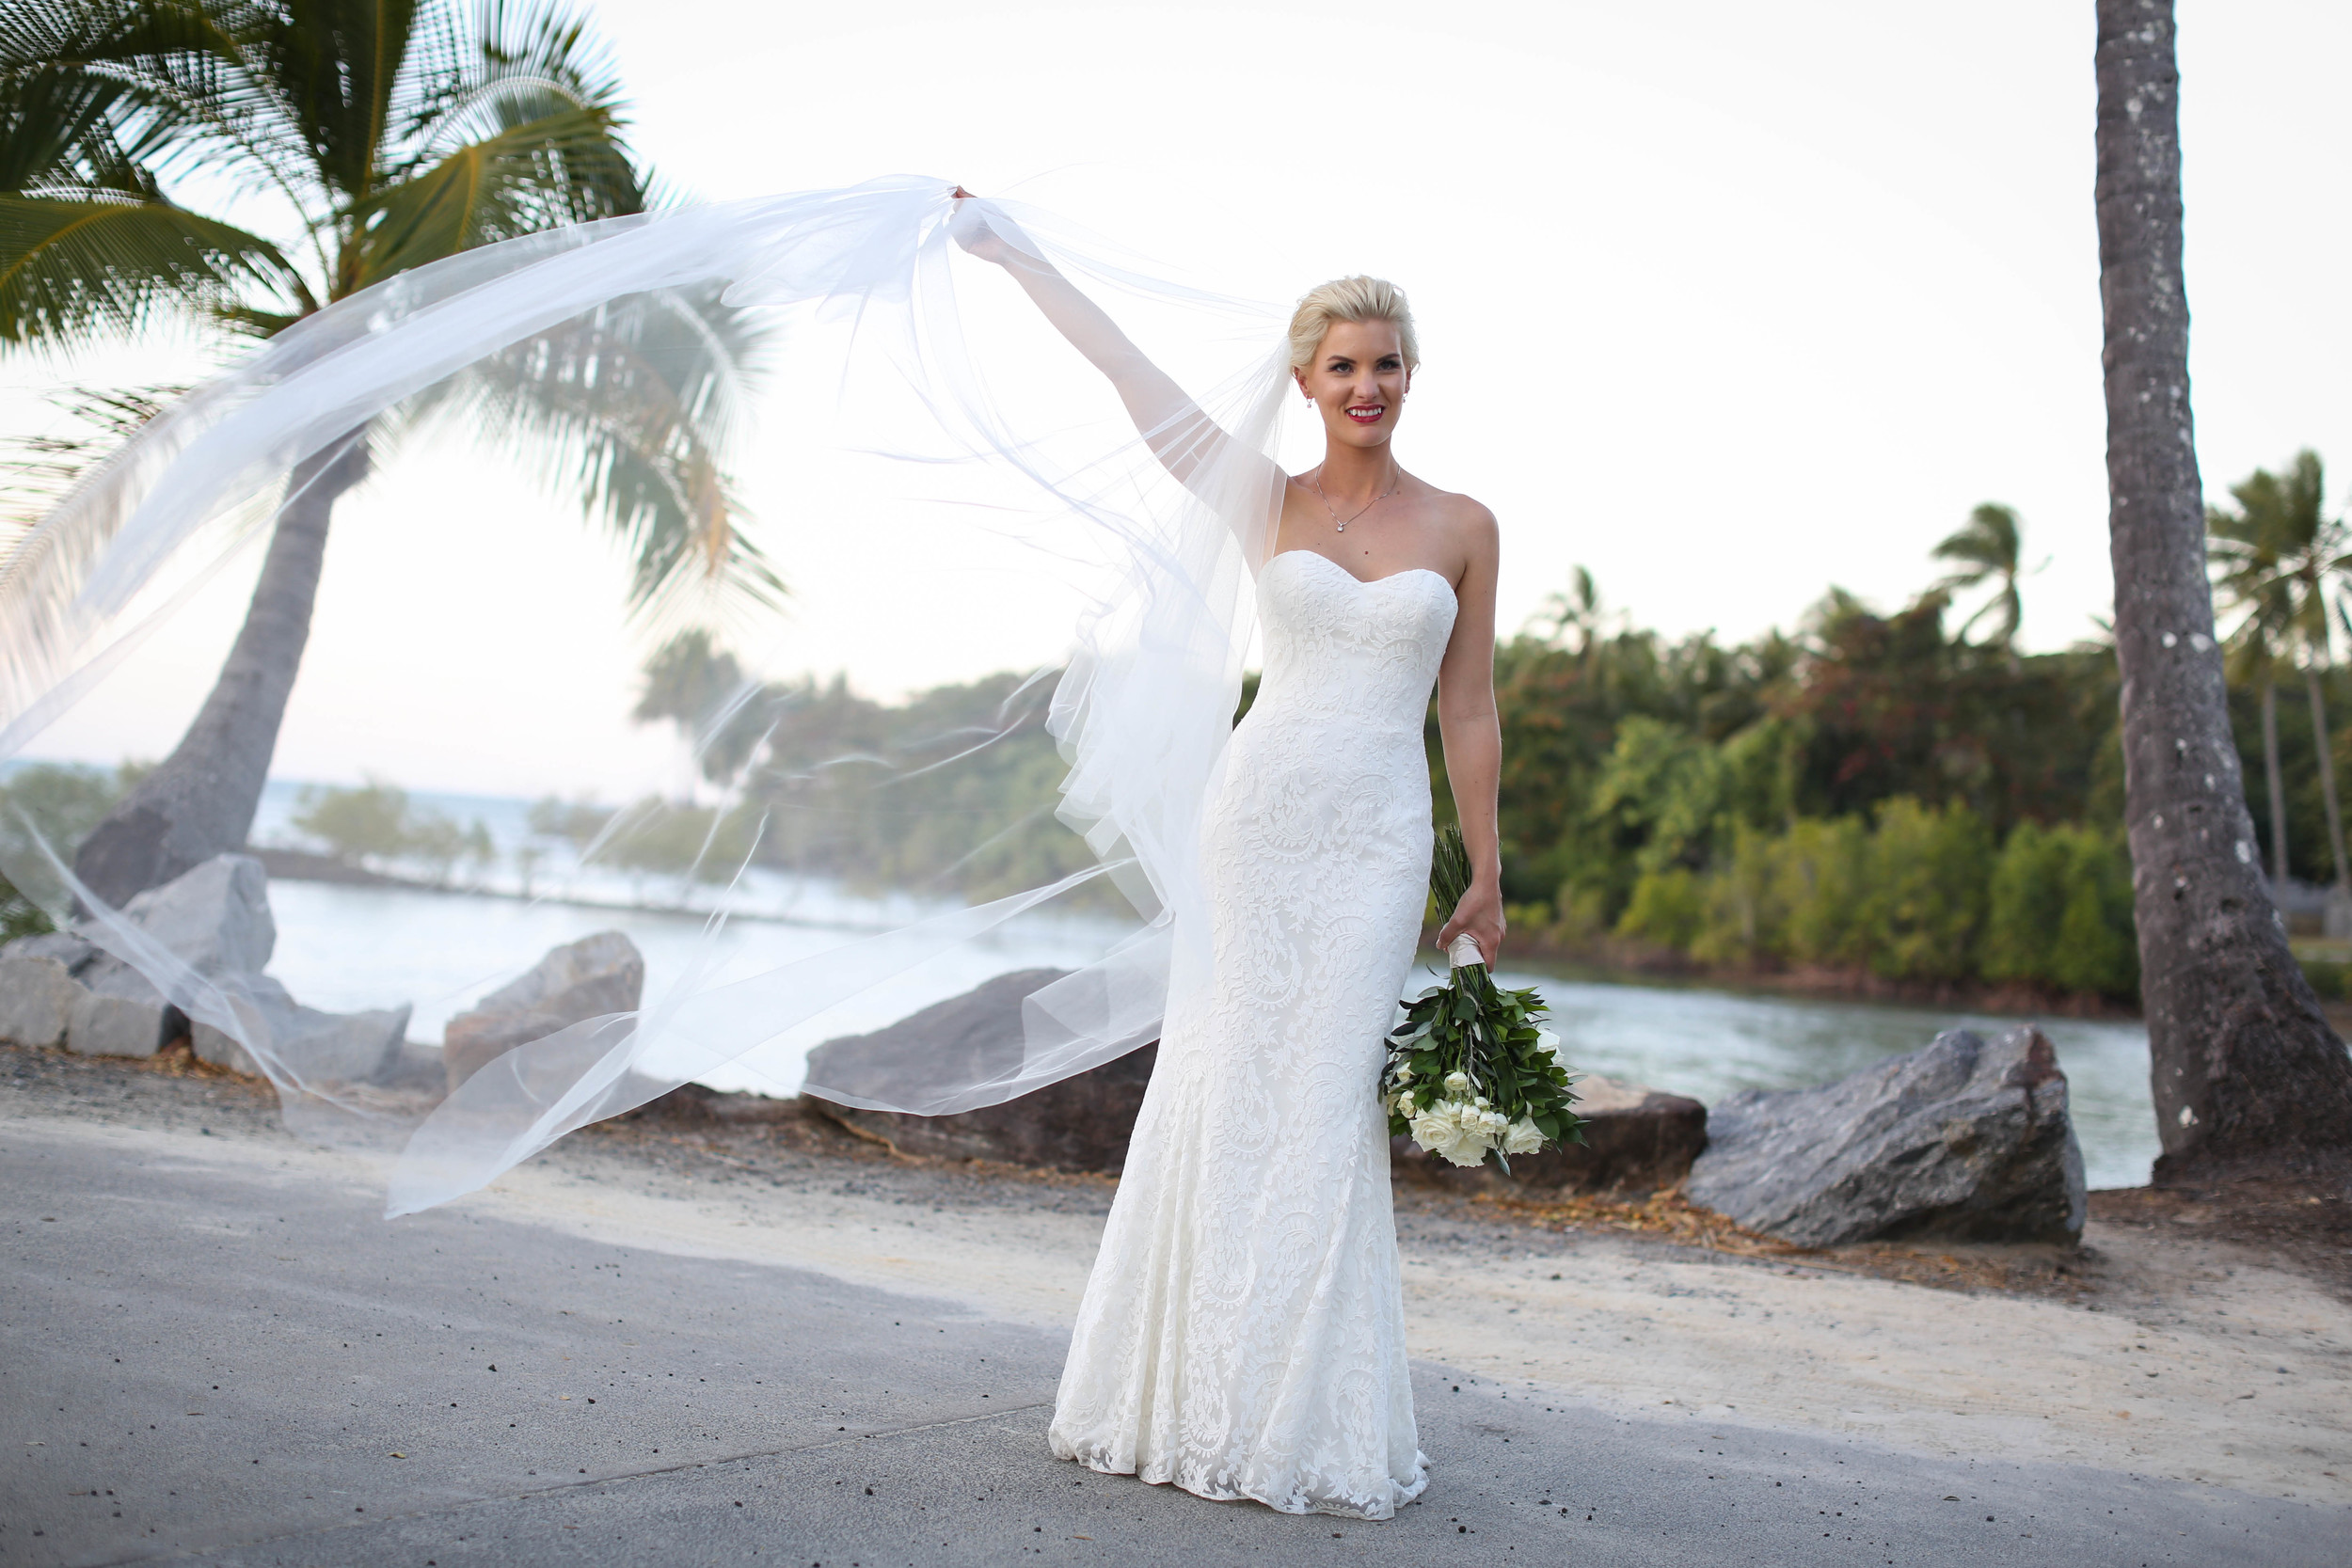 Bridal Gown Tanya Anic Photography 1 Slade_623.jpg